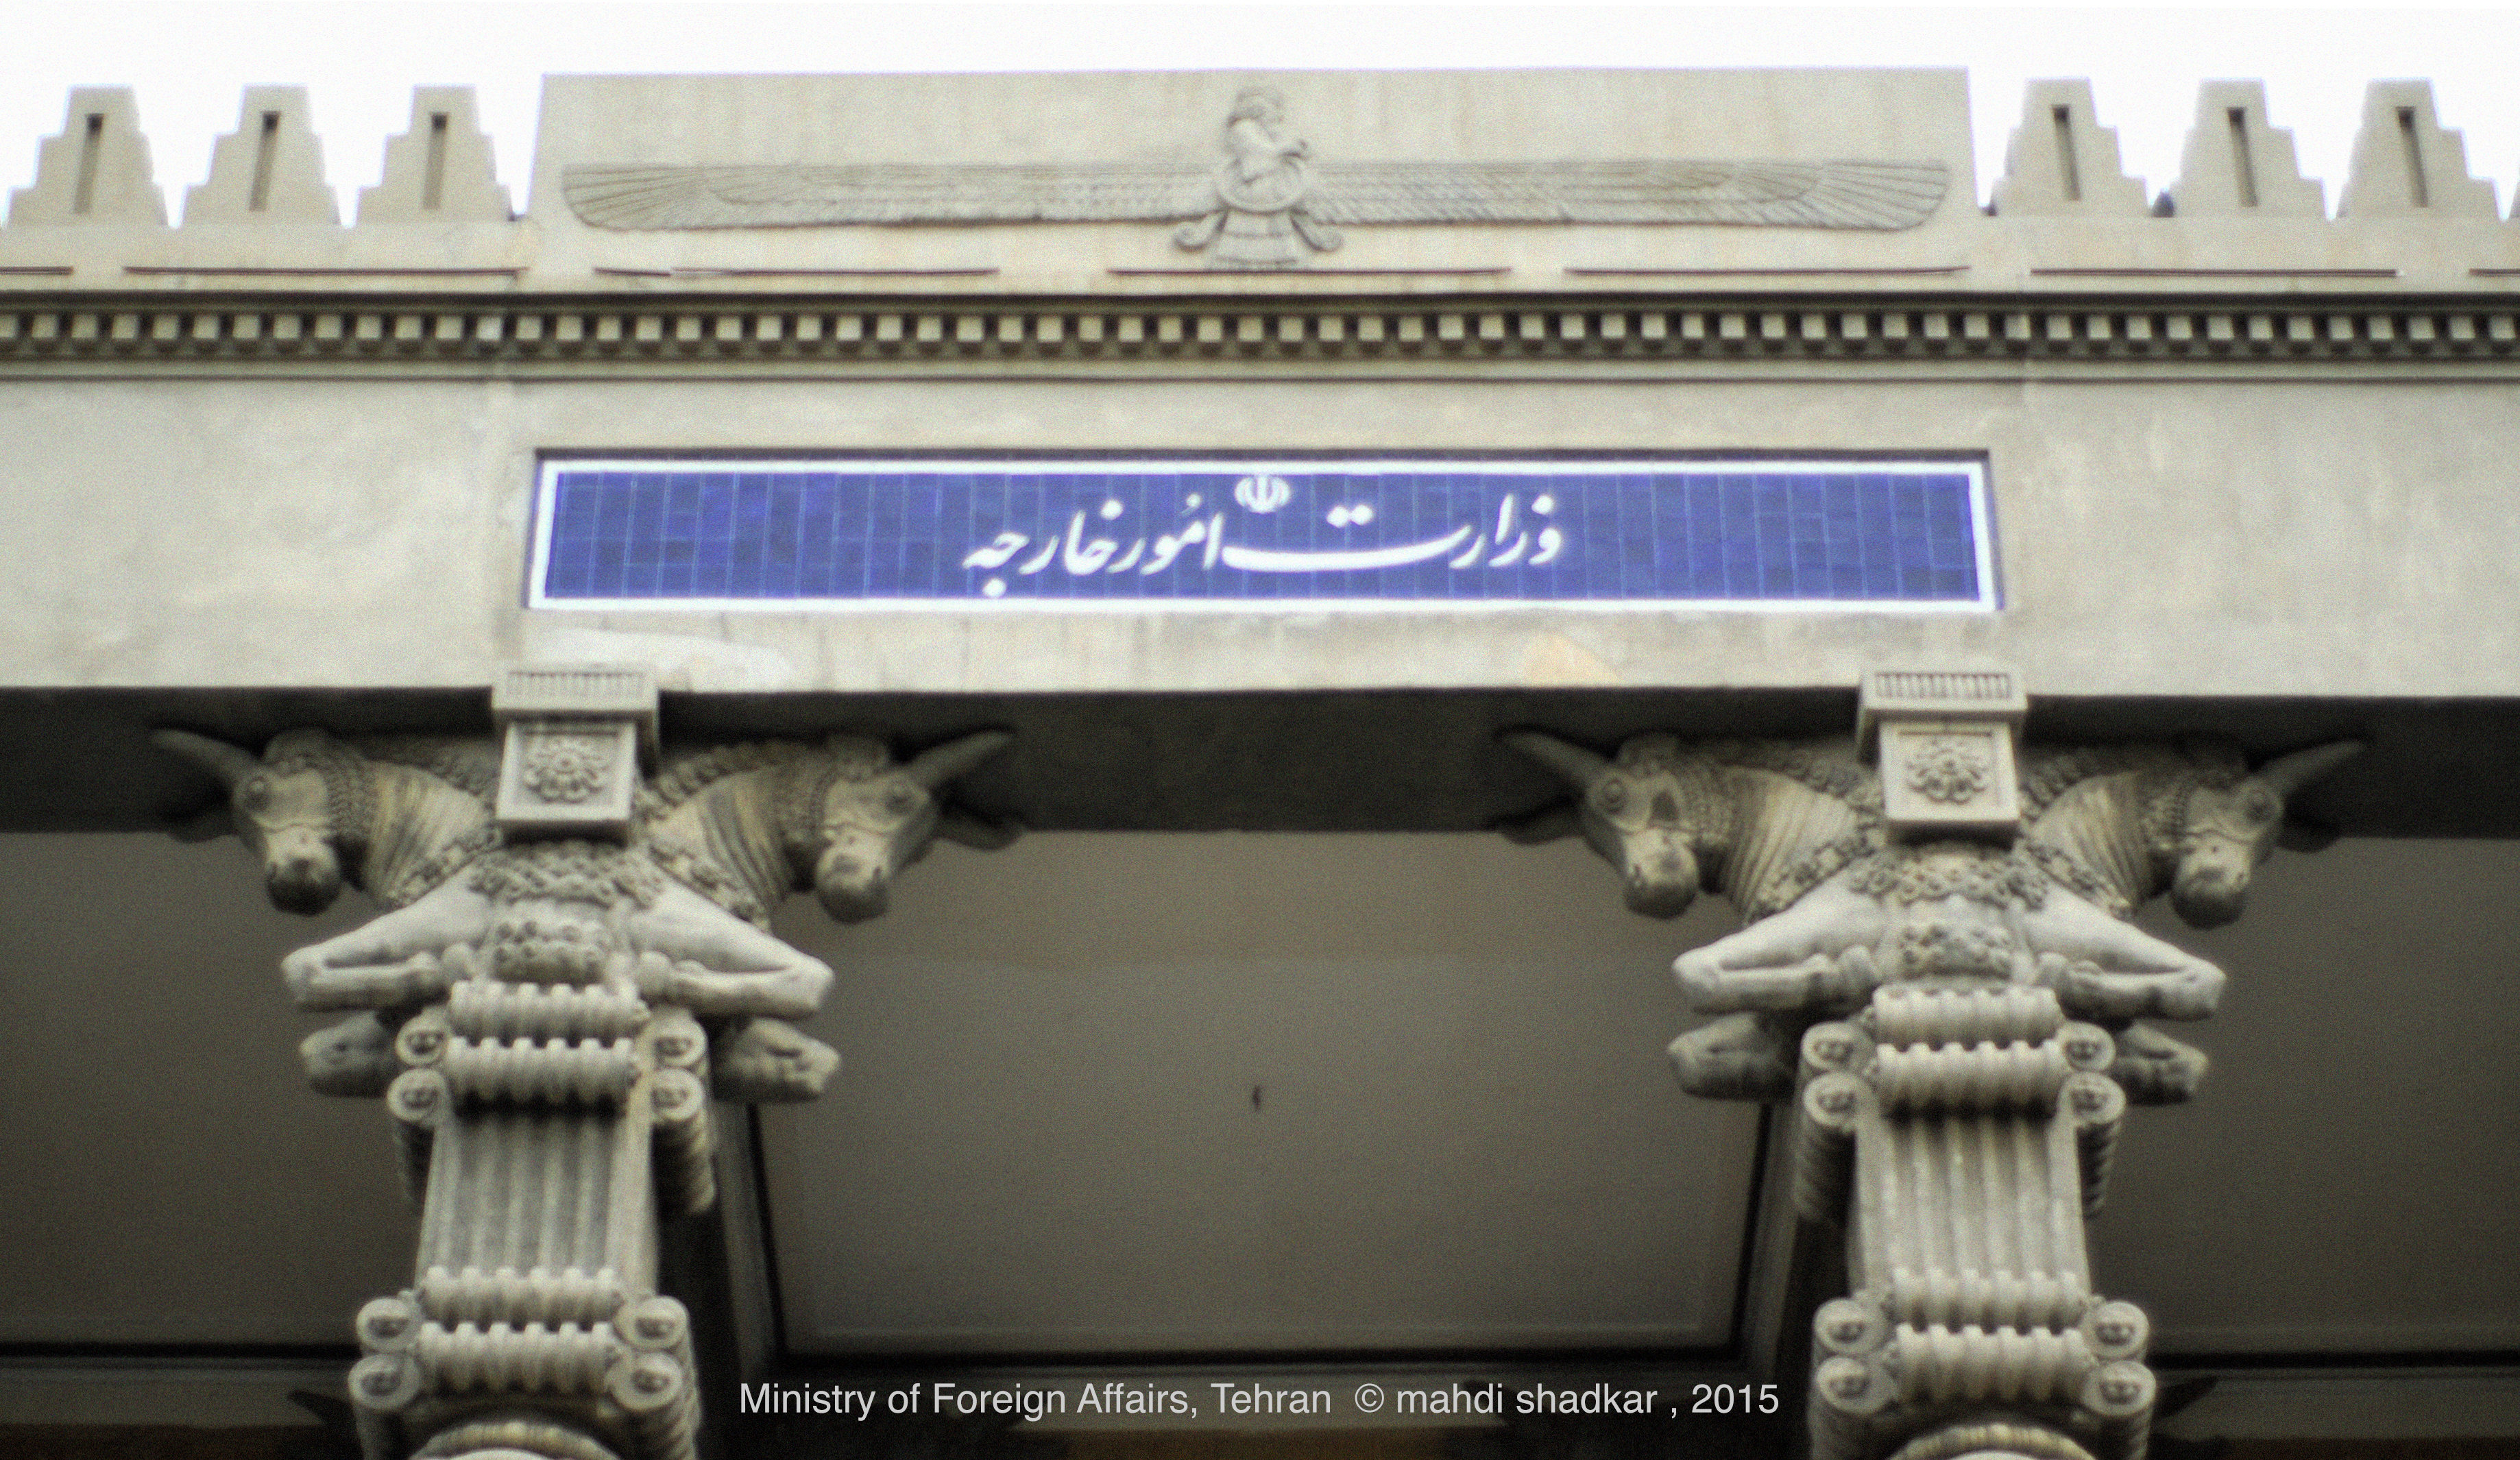 Ministry of Foreign Affairs Tehran, Ministry of Foreign Affairs Tehran – oblique